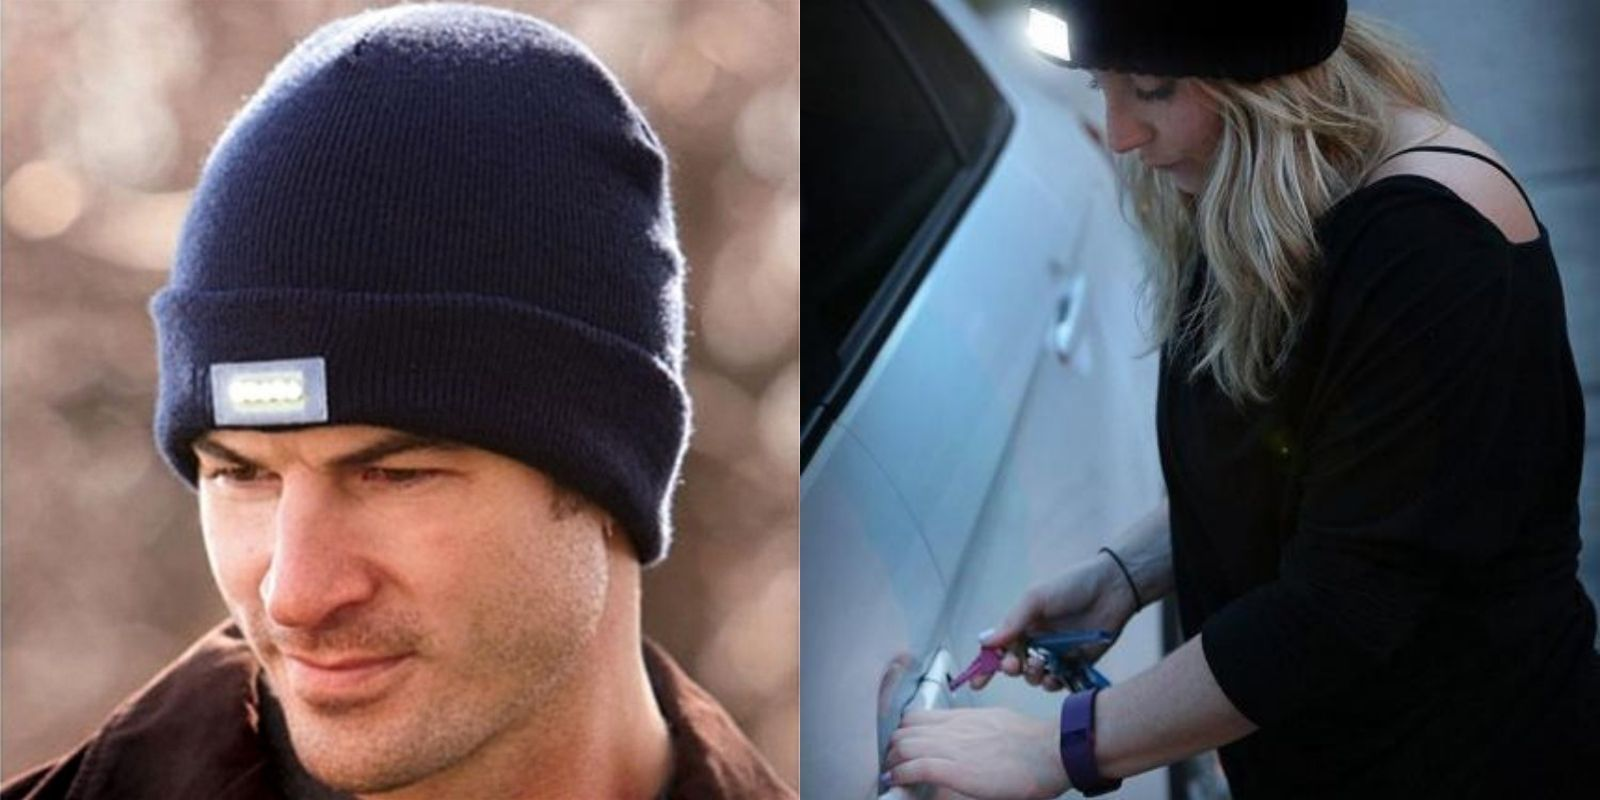 Knit Tactical Beanie Hat